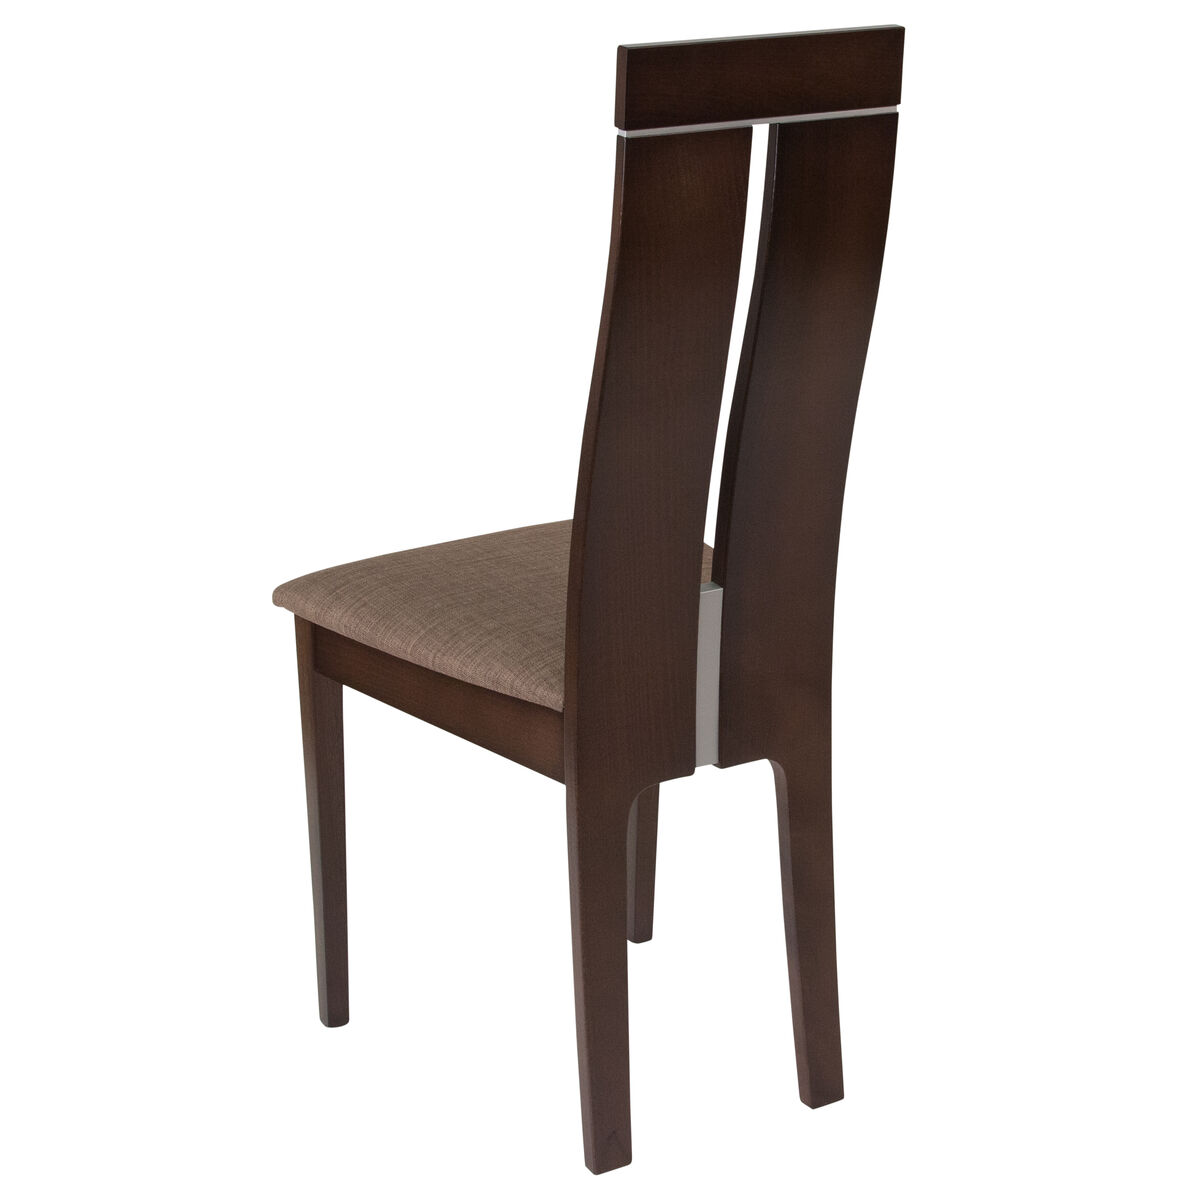 Our avalon espresso finish wood dining chair with clean lines and golden honey brown fabric seat